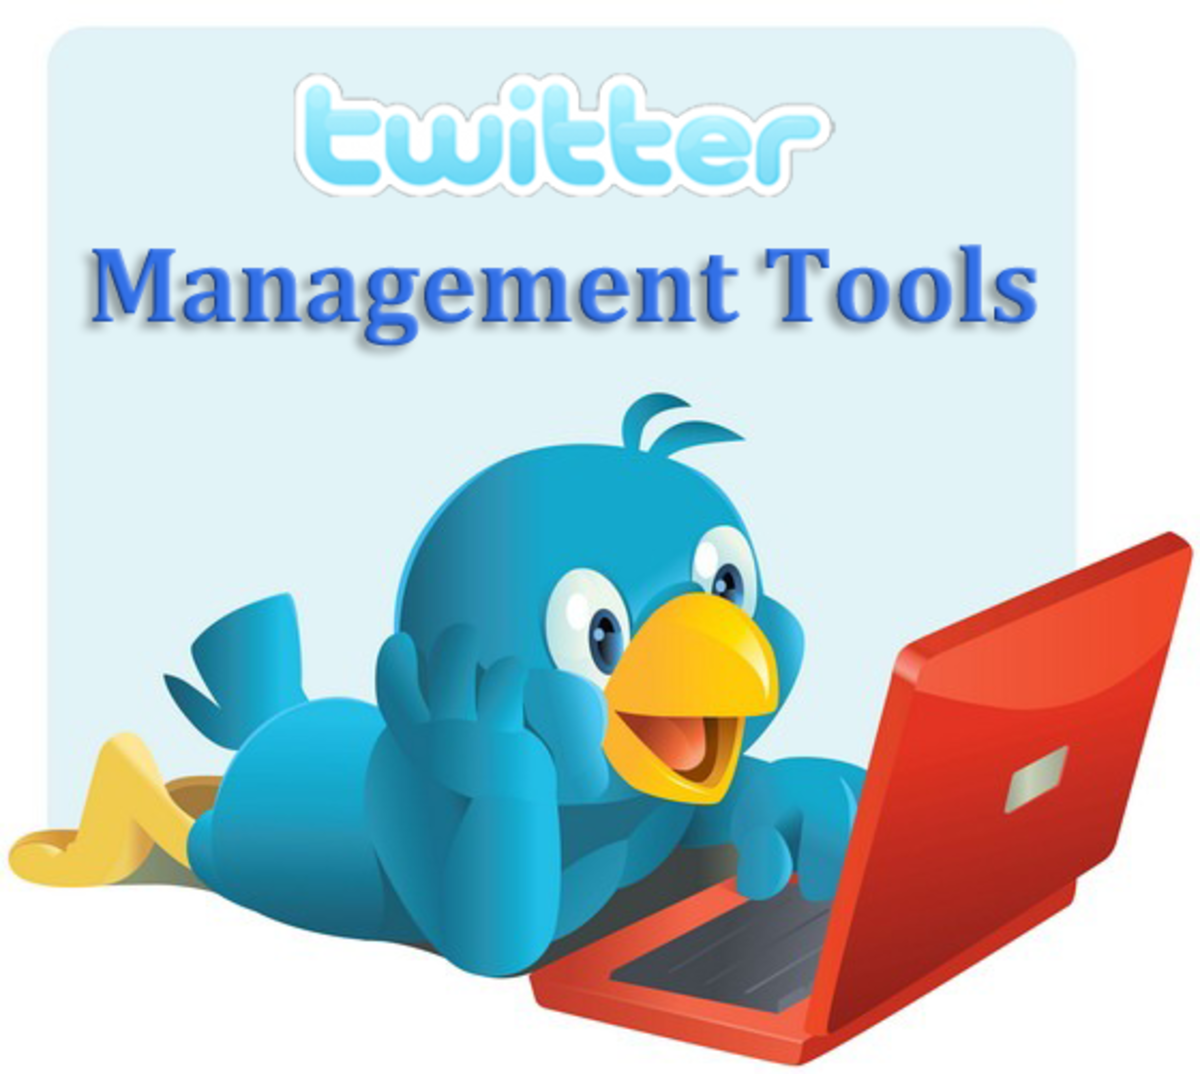 List of Must-Know Twitter Management Tools for Businesses and Individuals